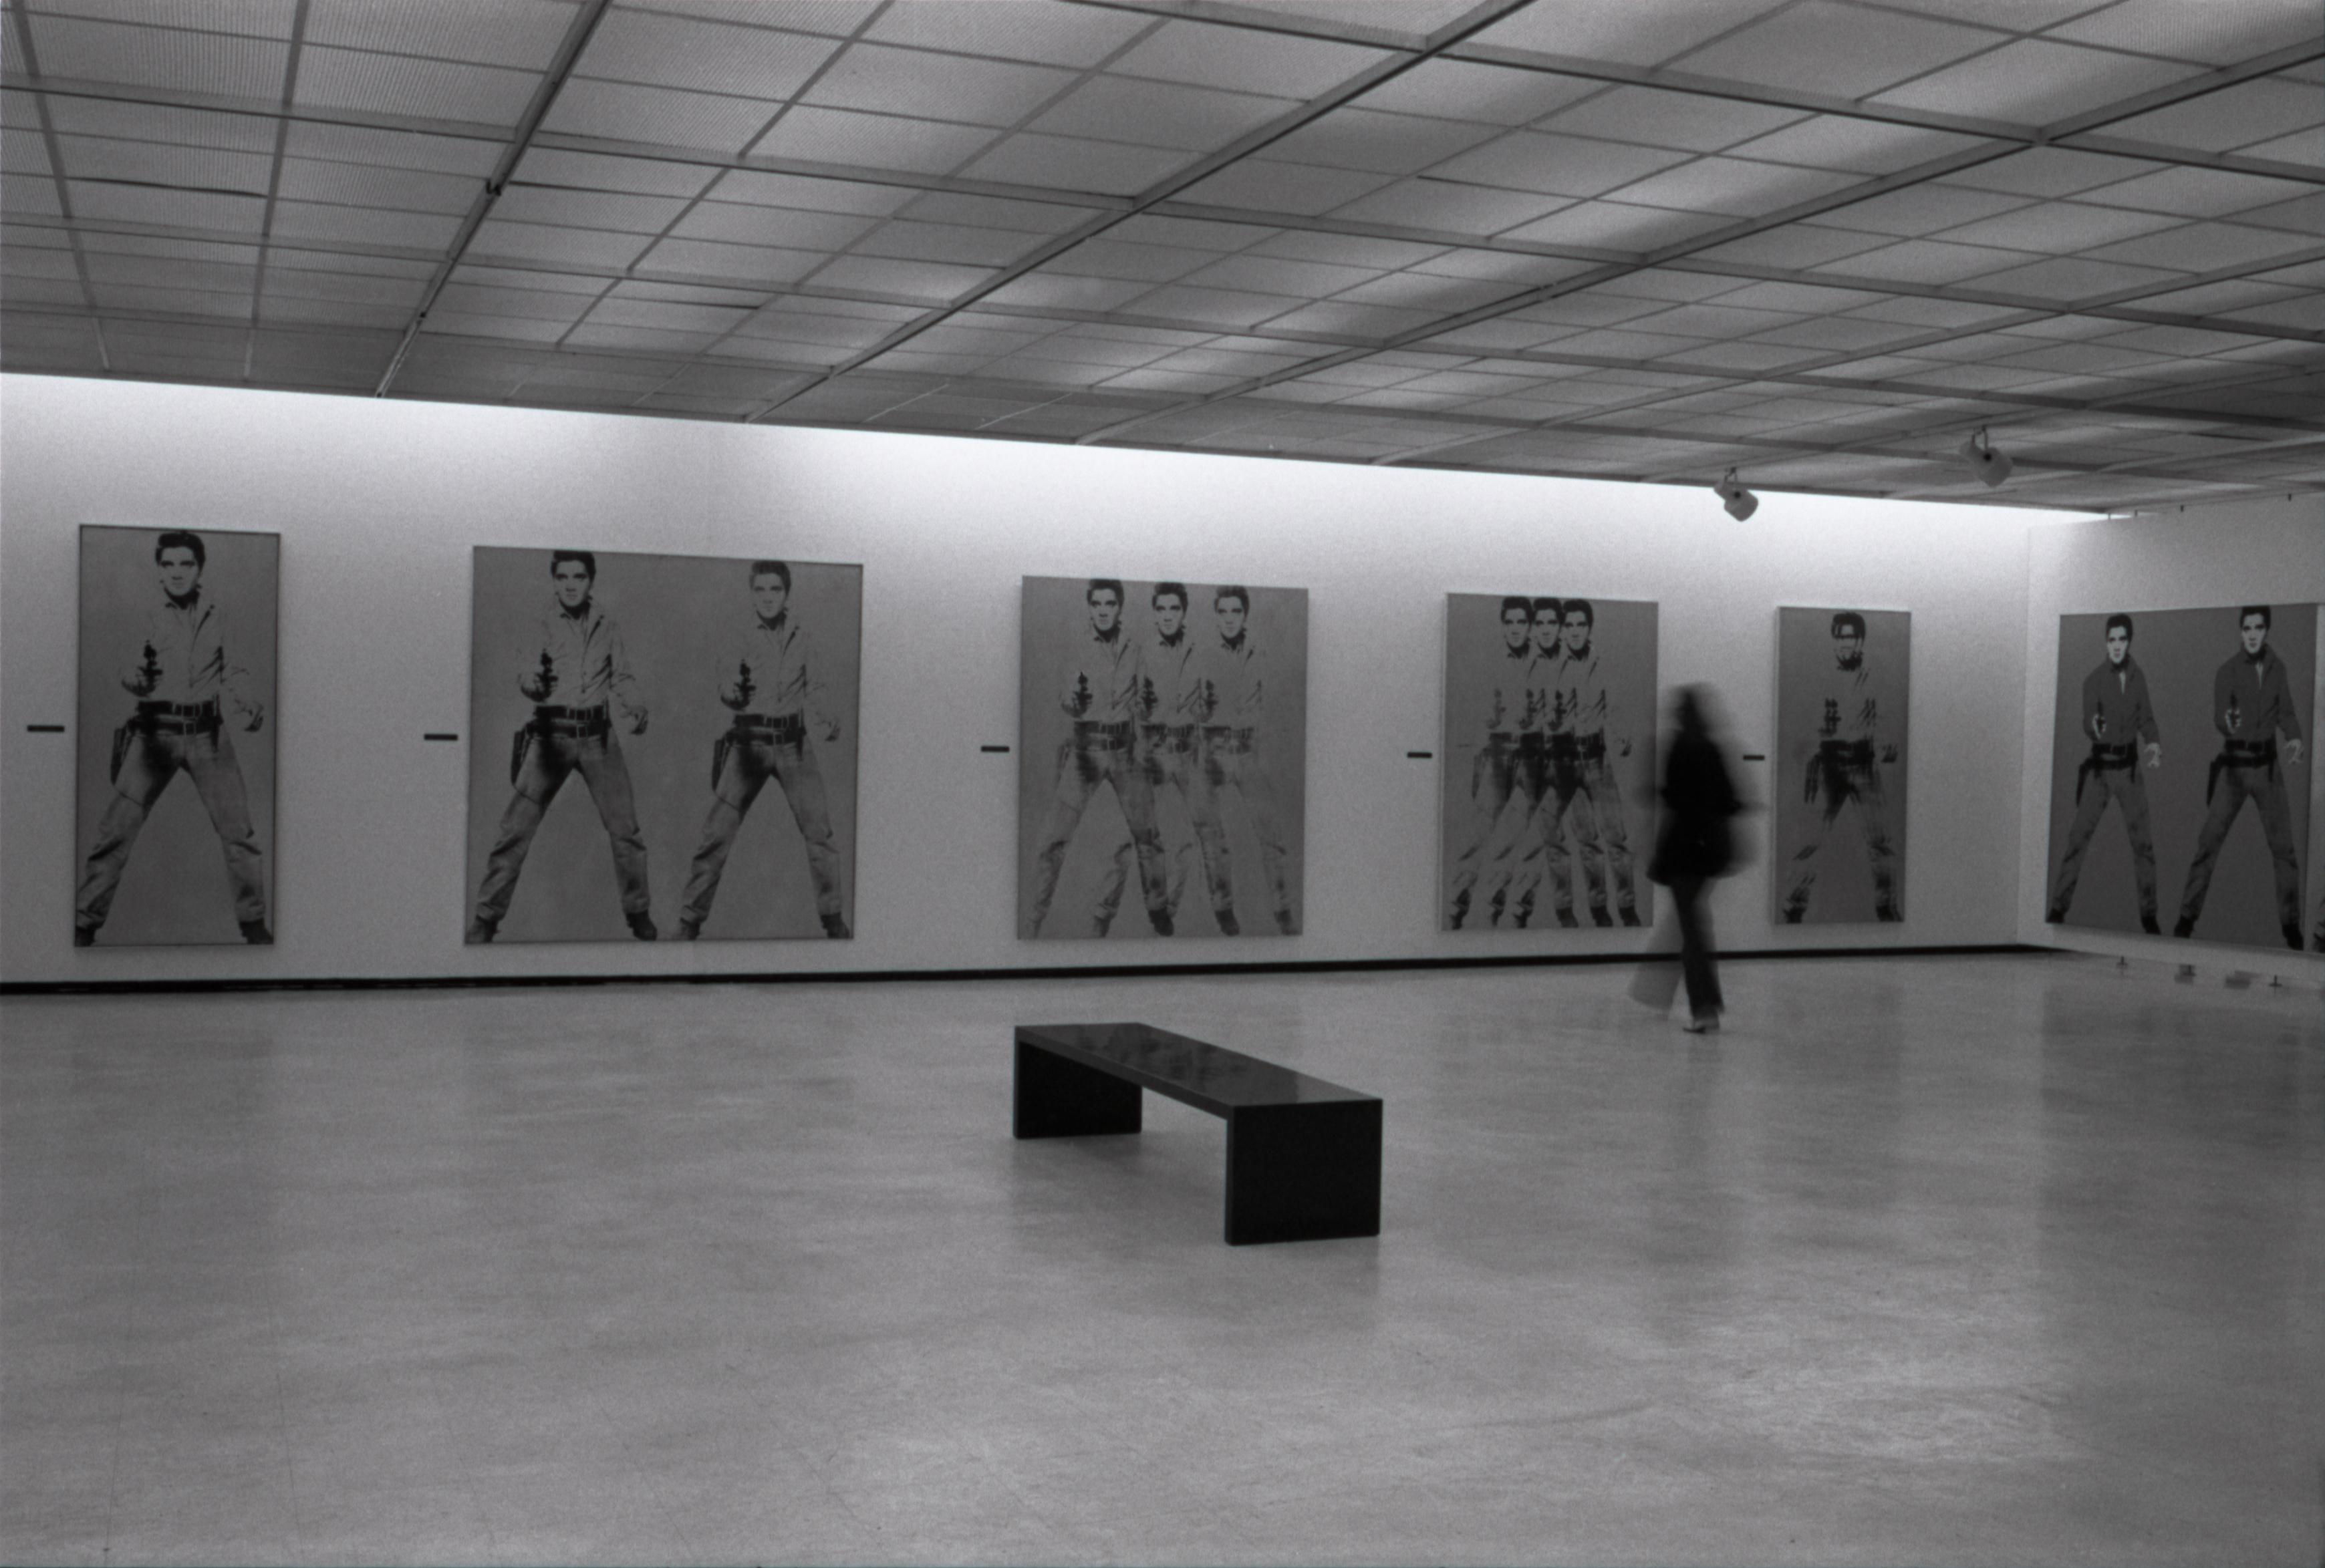 A black-and-white photograph of a gallery with several large paintings of Elvis Presley with dark hair in Western clothing holding a handgun. A black bench sits in the center of the room. A blurry person moves in the gallery.